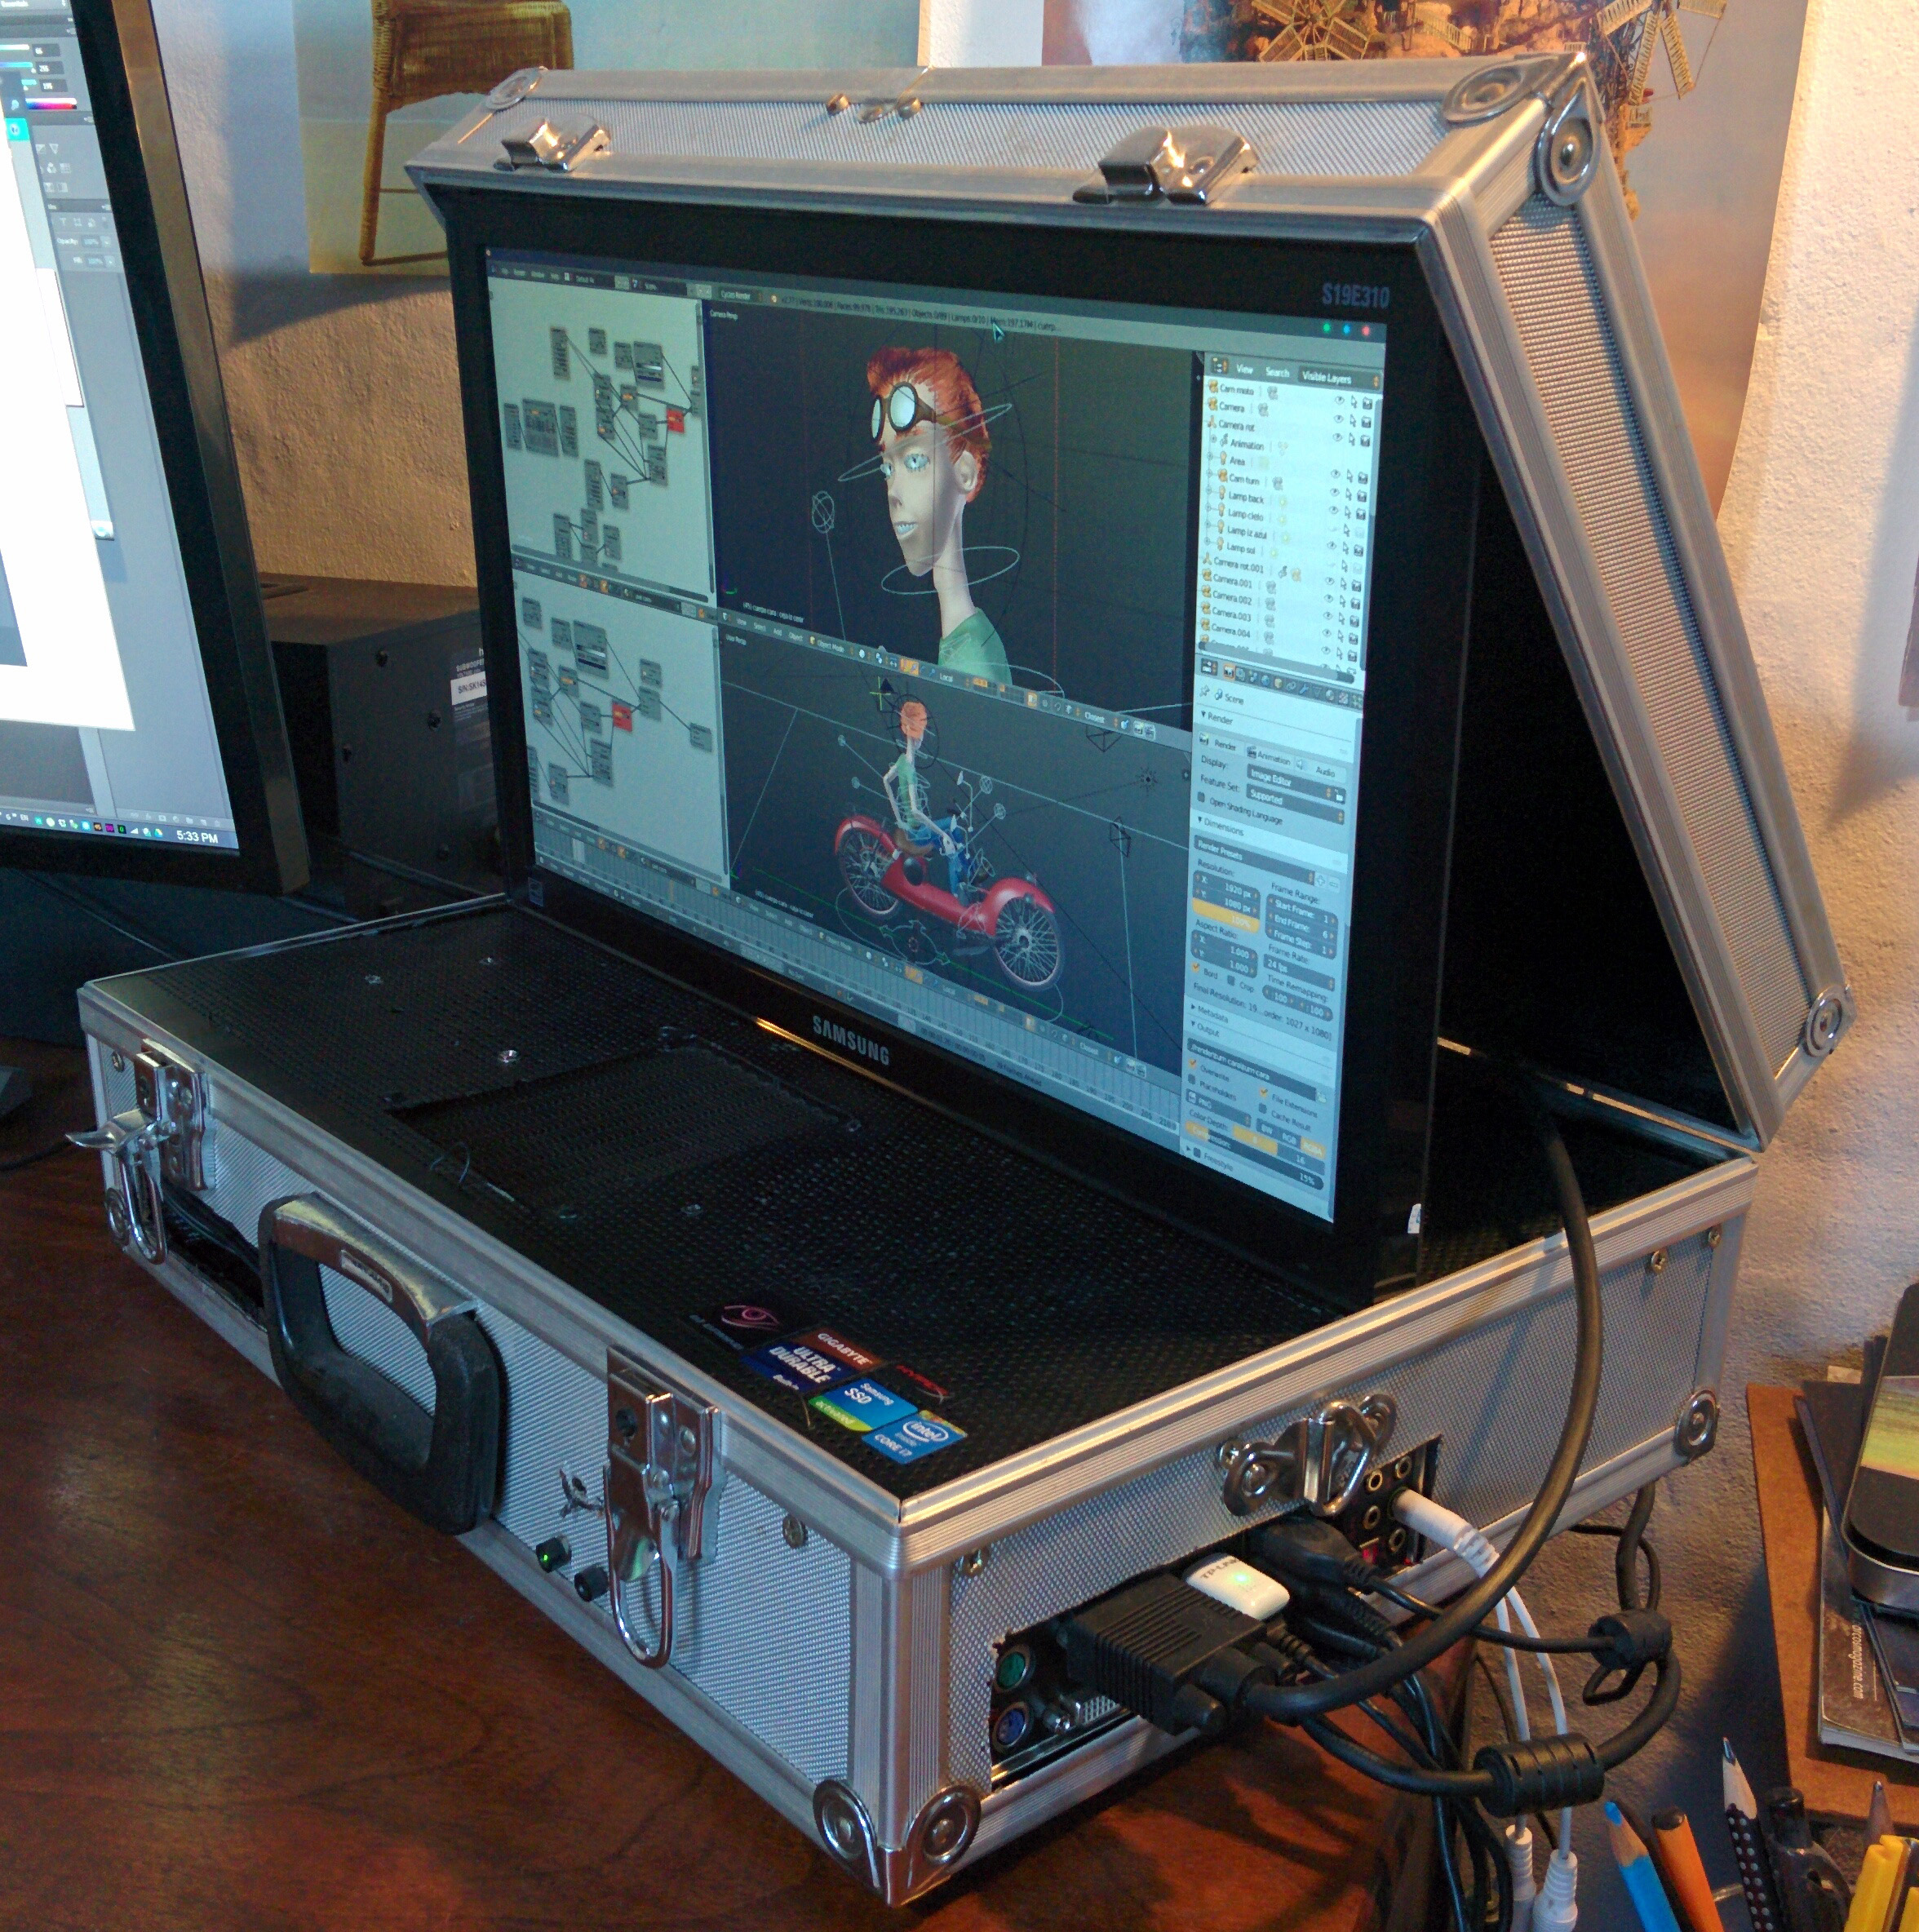 Saturn V - A 3D graphics, VR and Gaming Briefcase PC mod - Overclock